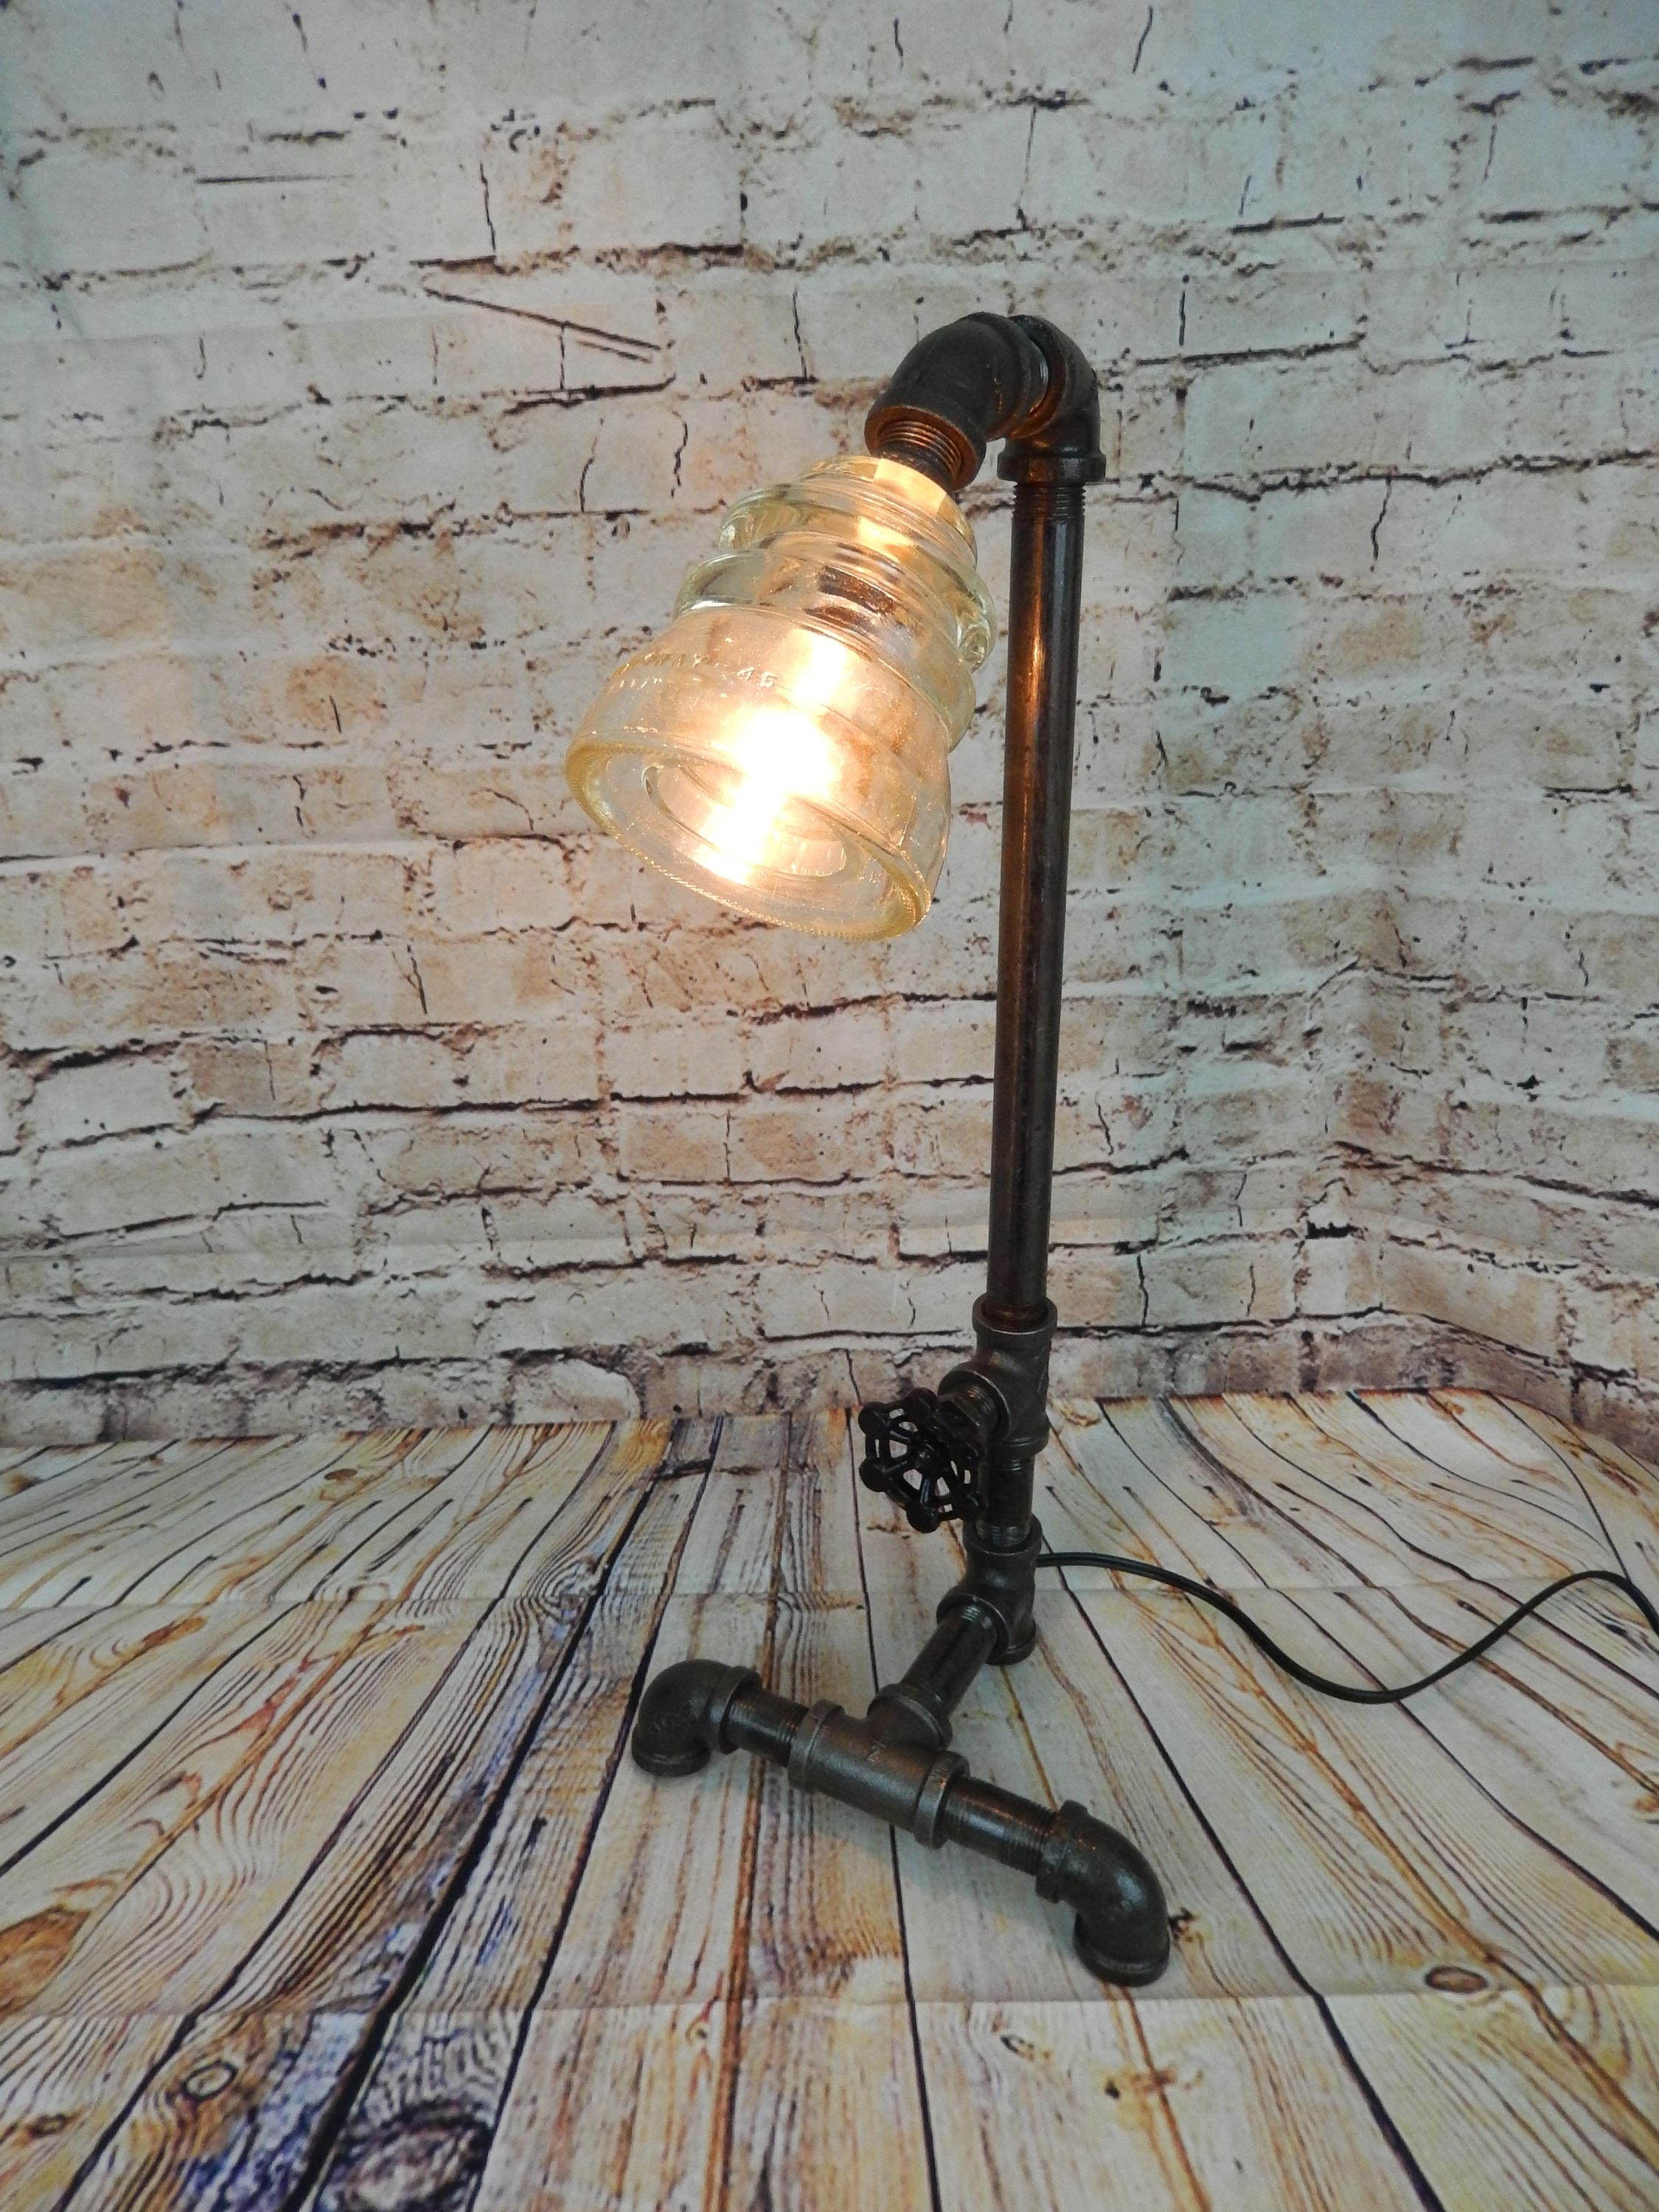 of lovely home picture size bulb pipe iron industrial etsy light new full diy douglas bulbs brilliant lighting simple lights fitting black switch edison ideas fixture lamps chandelier steel parts lamp cage metal exceptional wrought cashorika graphics galvanised floor decoration galvanized